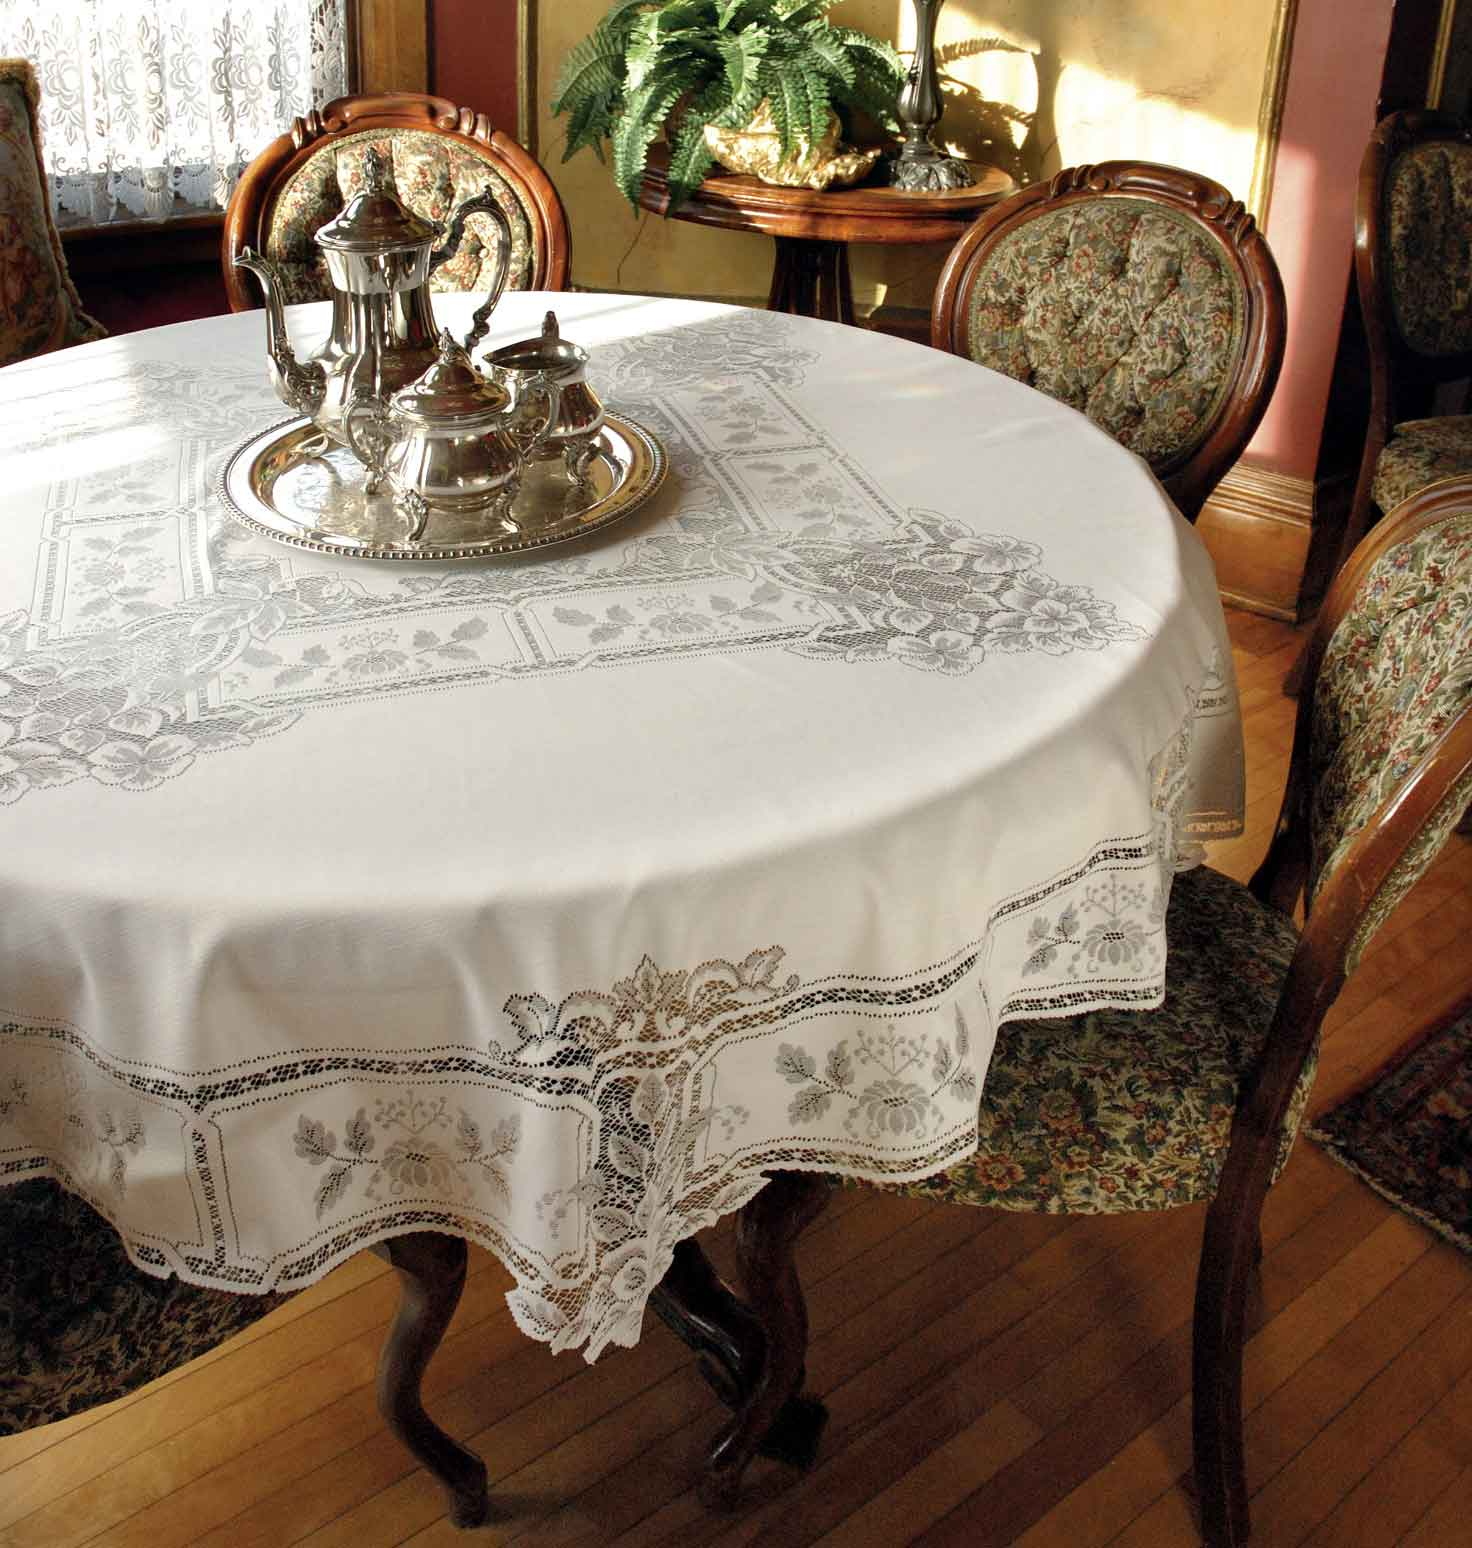 Lace Tablecloths Heirloom Heritage Lace Made In The